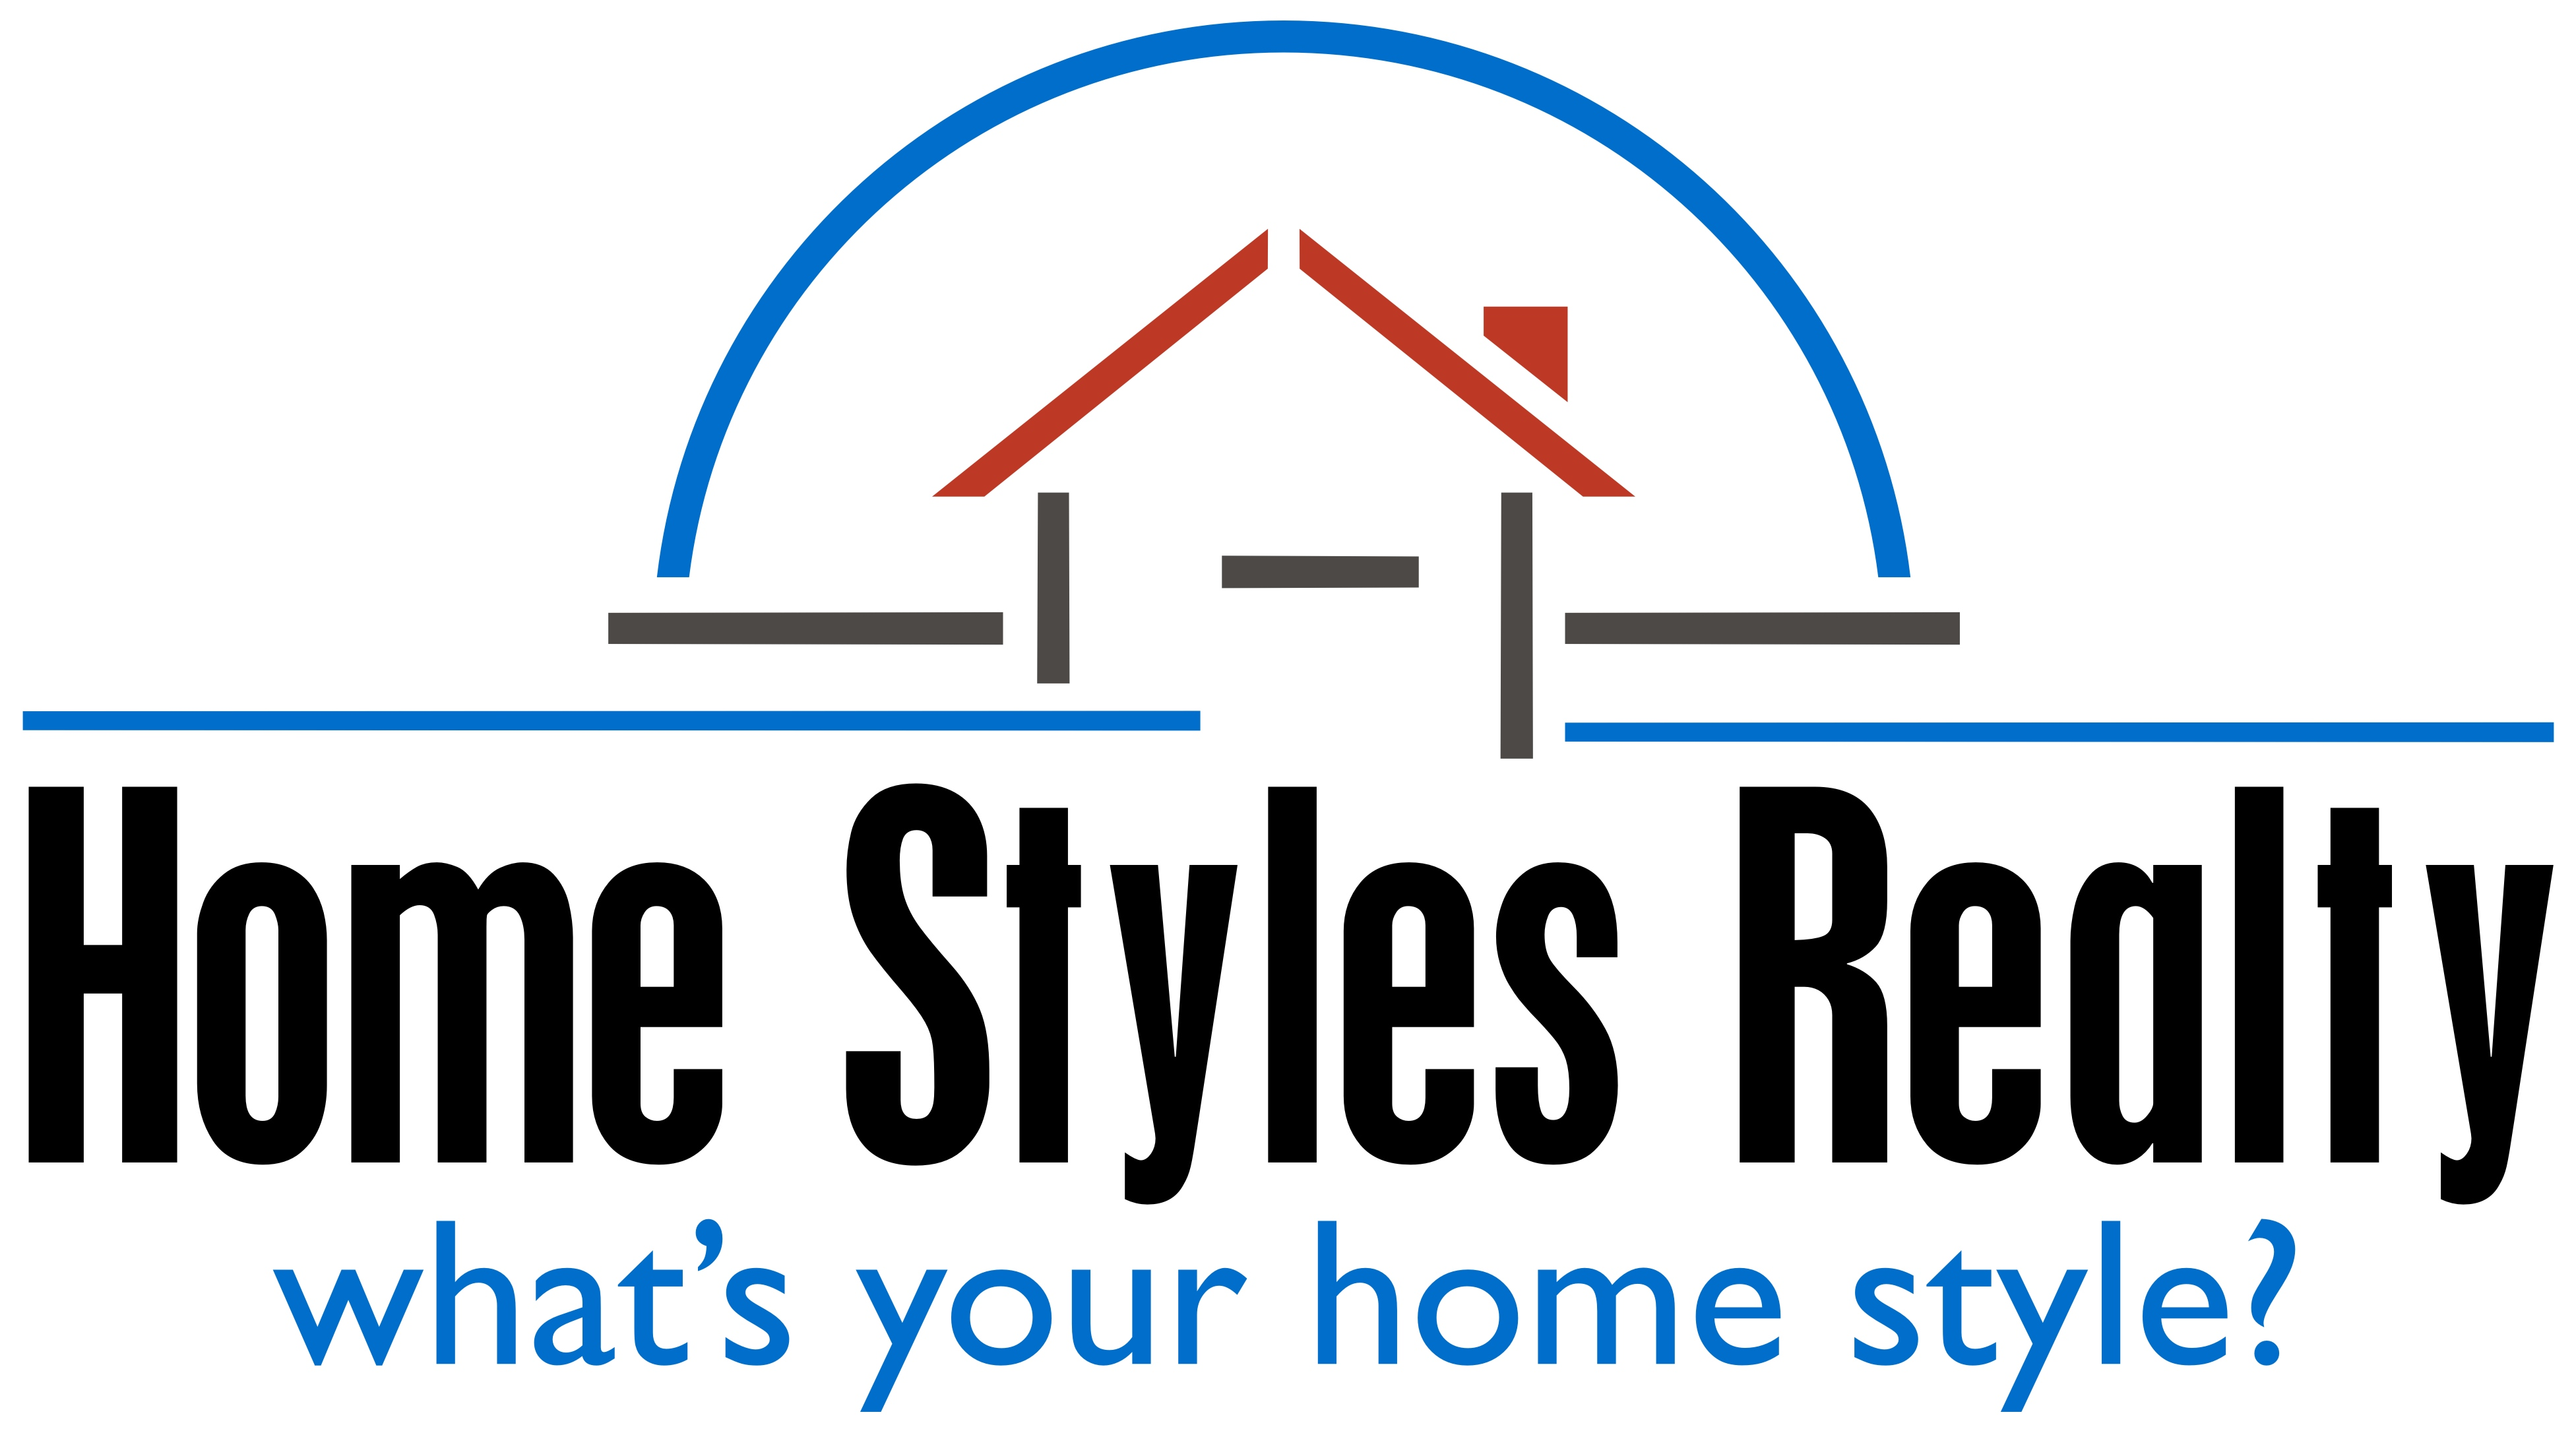 Home Styles Realty